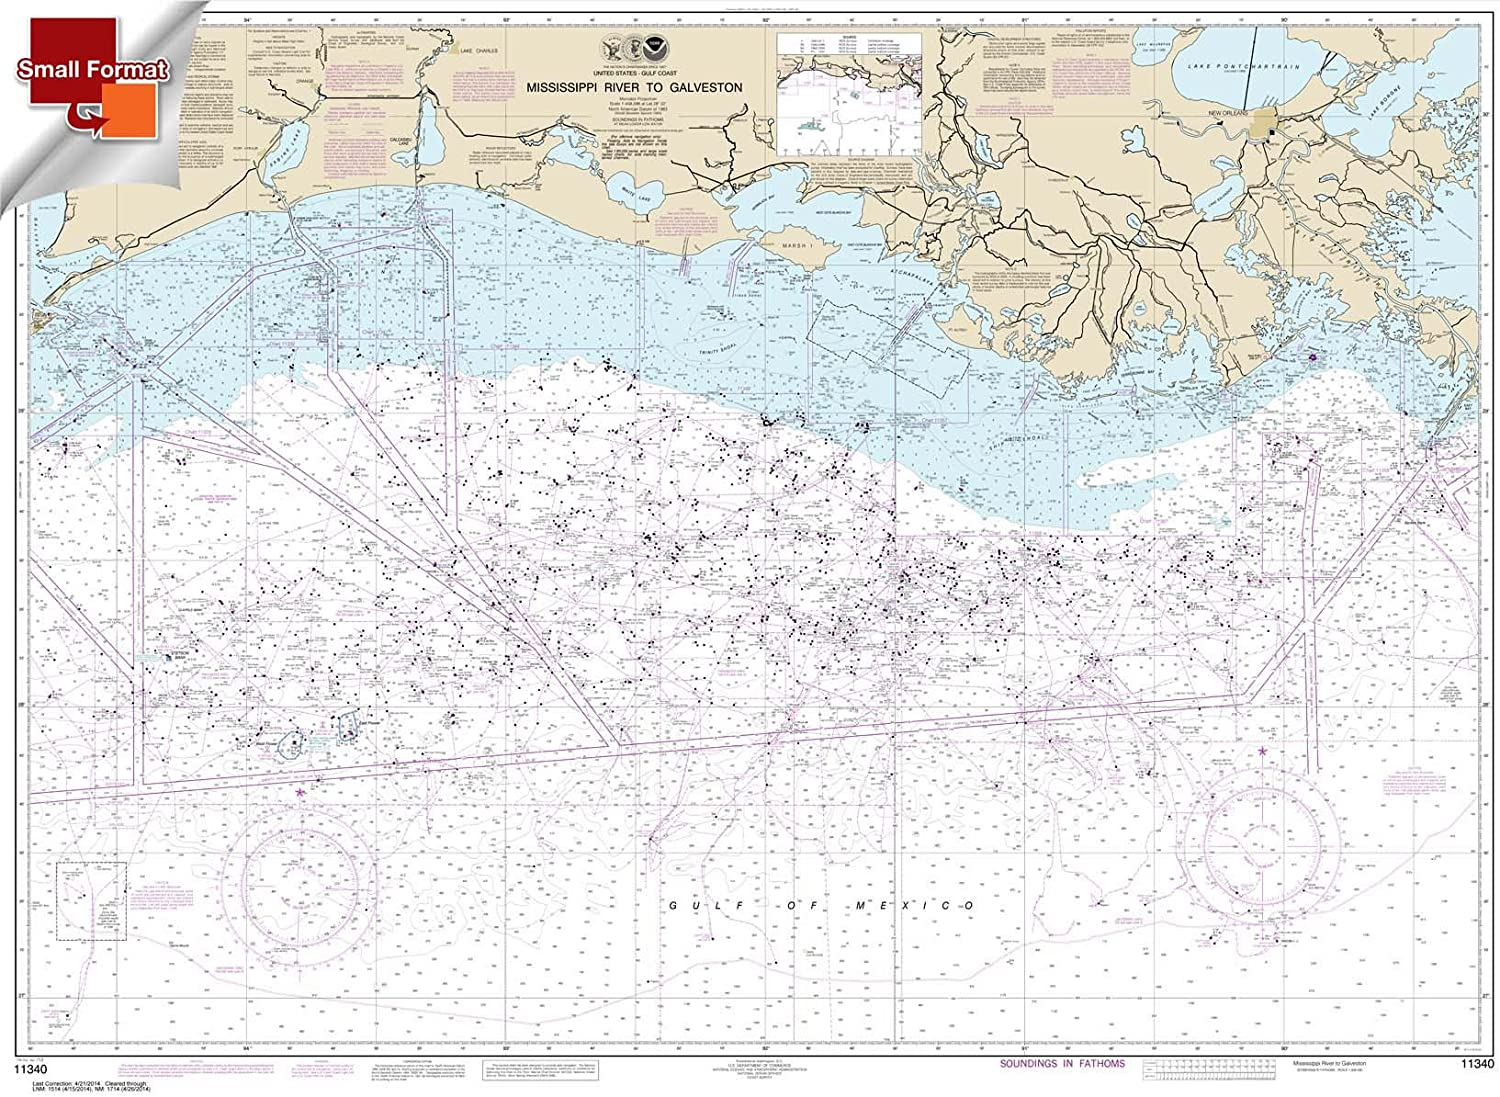 Paradise Cay Publications NOAA Chart 11340 Mississippi River to Galveston 21.00 x 28.93 SMALL FORMAT WATERPROOF